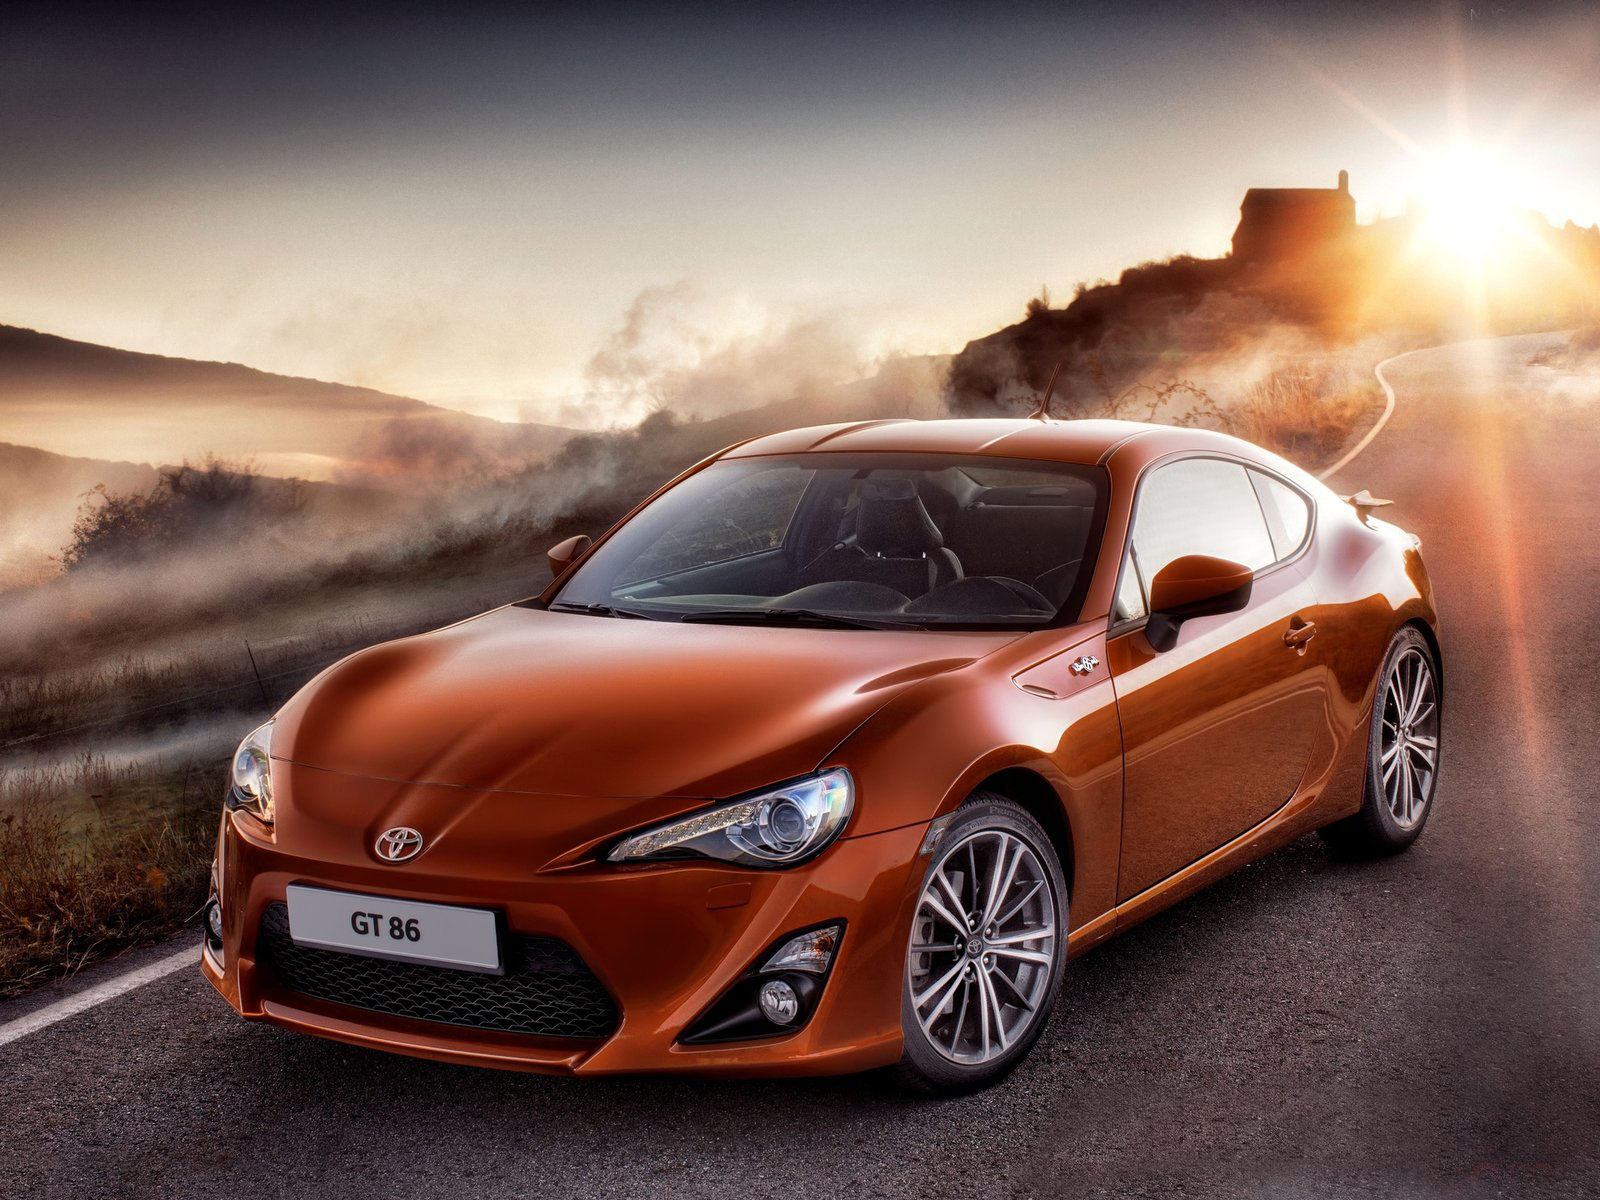 2013 toyota gt 86 car pictures review. Black Bedroom Furniture Sets. Home Design Ideas